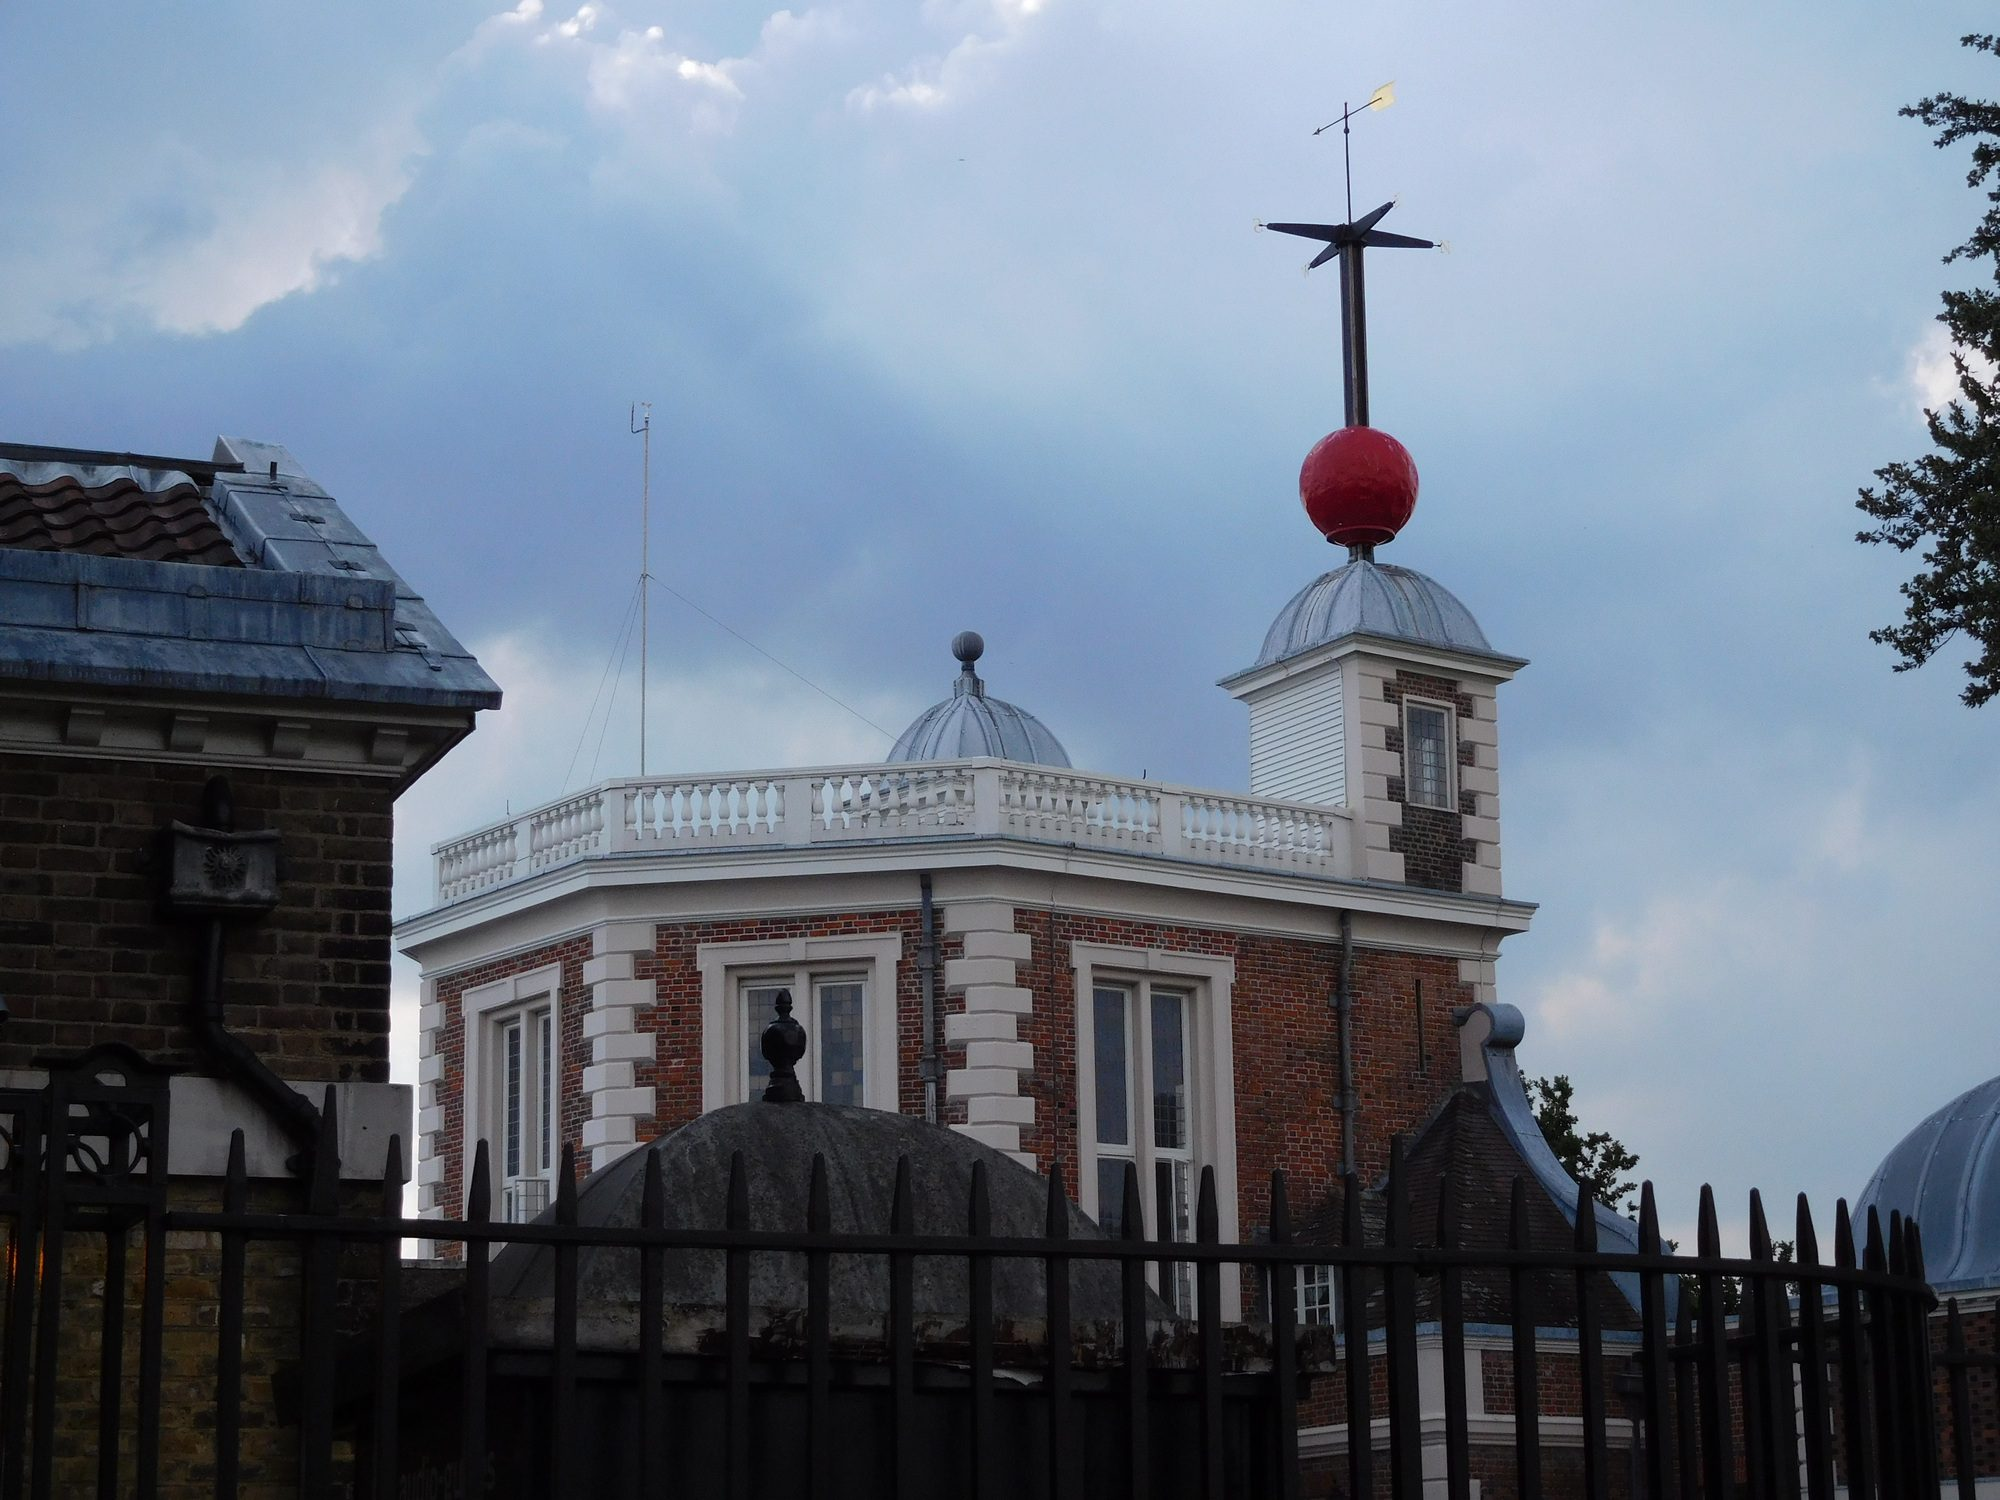 Royal Observatory in London